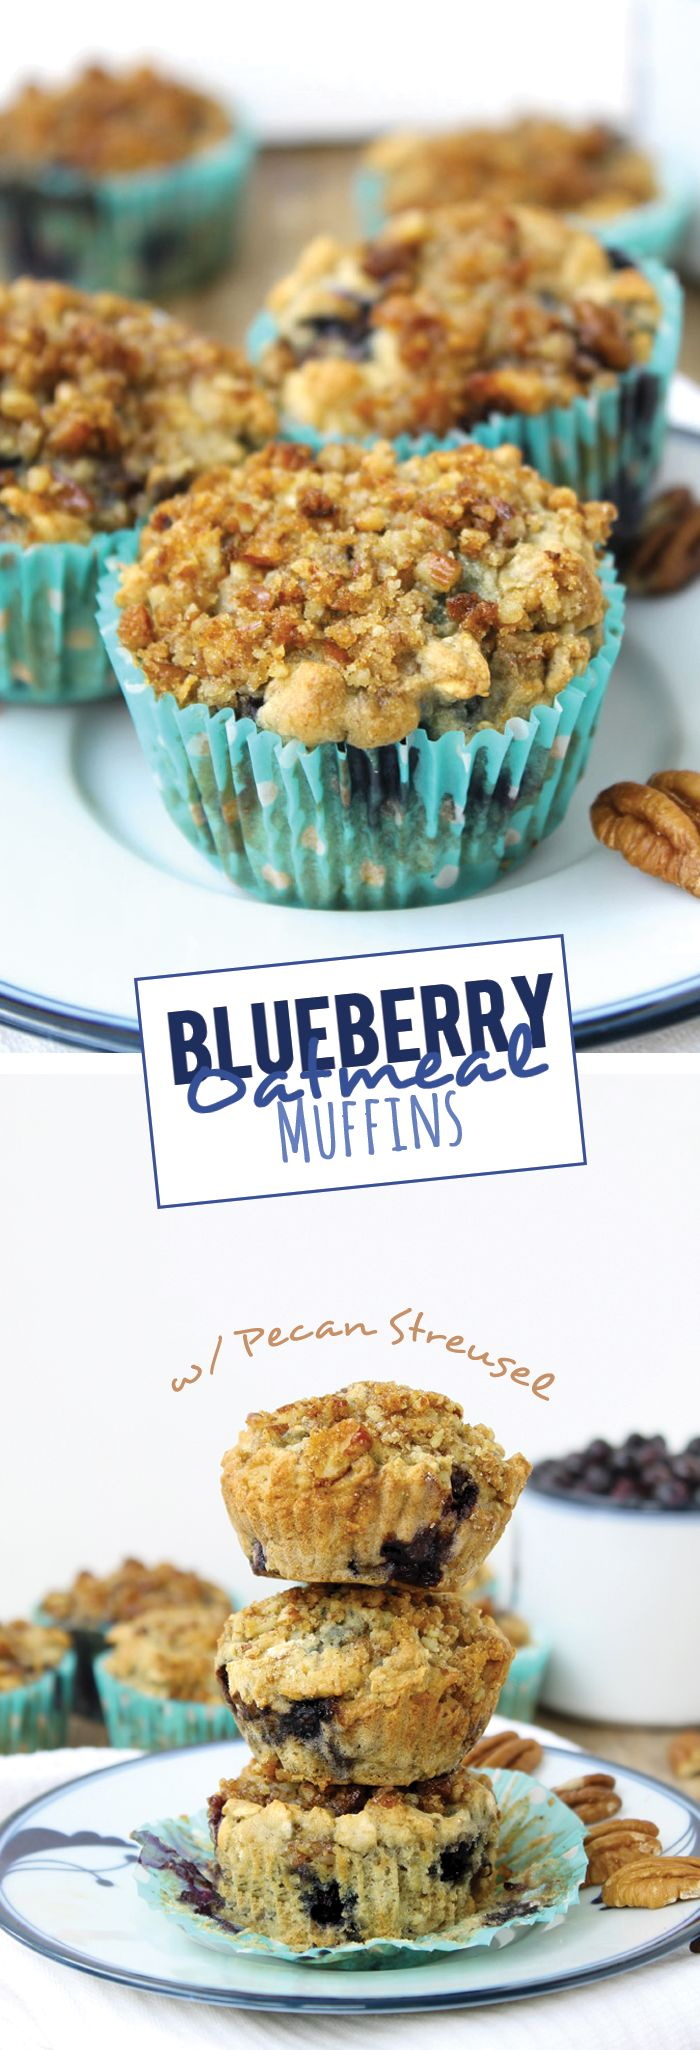 Blueberry Oatmeal Muffins with Pecan Streusel | Recipe ...